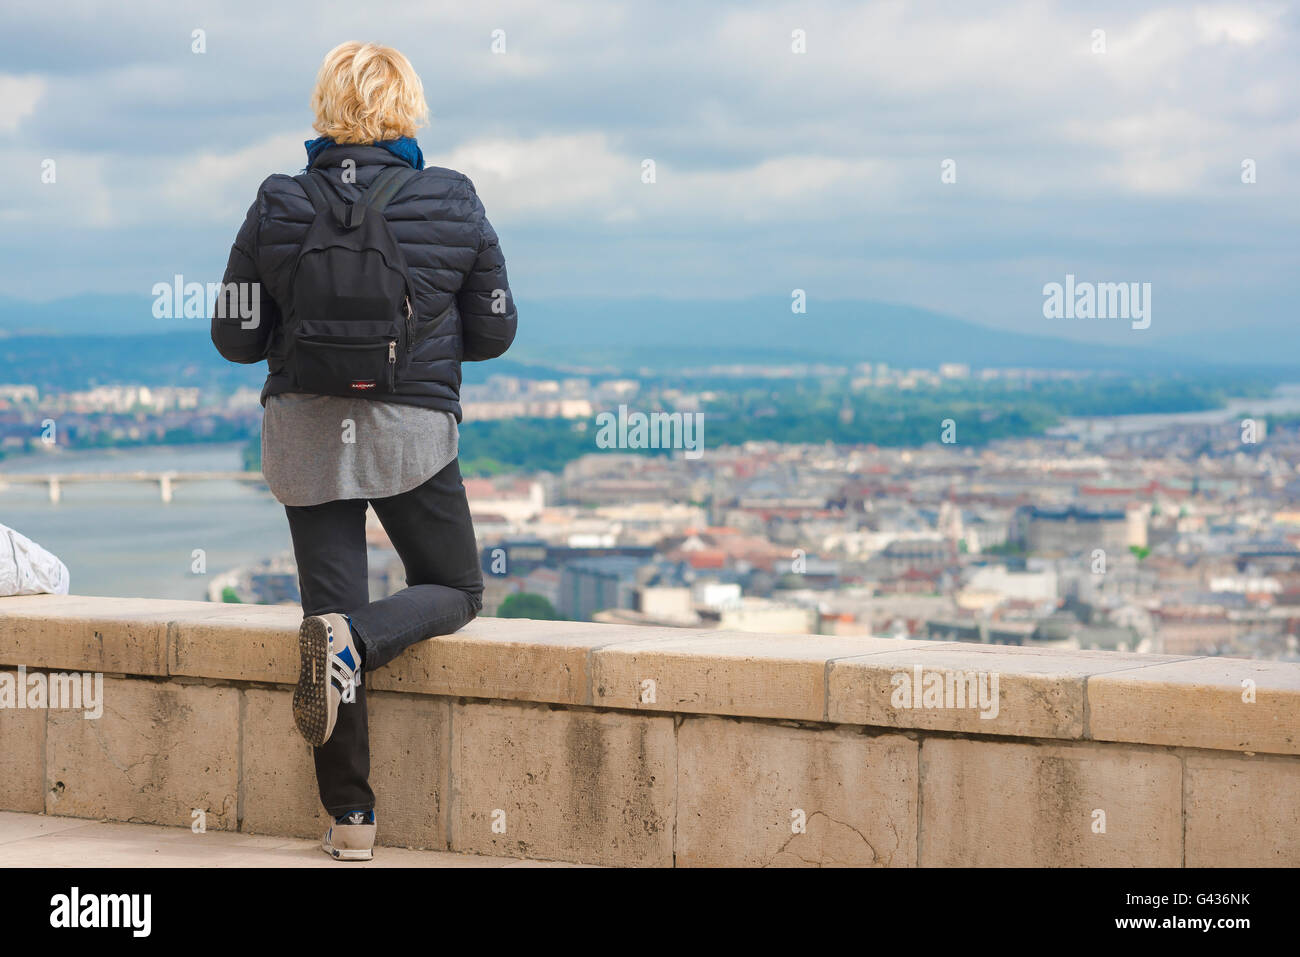 A tourist surveys the centre of Budapest from the top of Gellert-hegy (hill) on the Buda side of the Danube, Hungary. - Stock Image